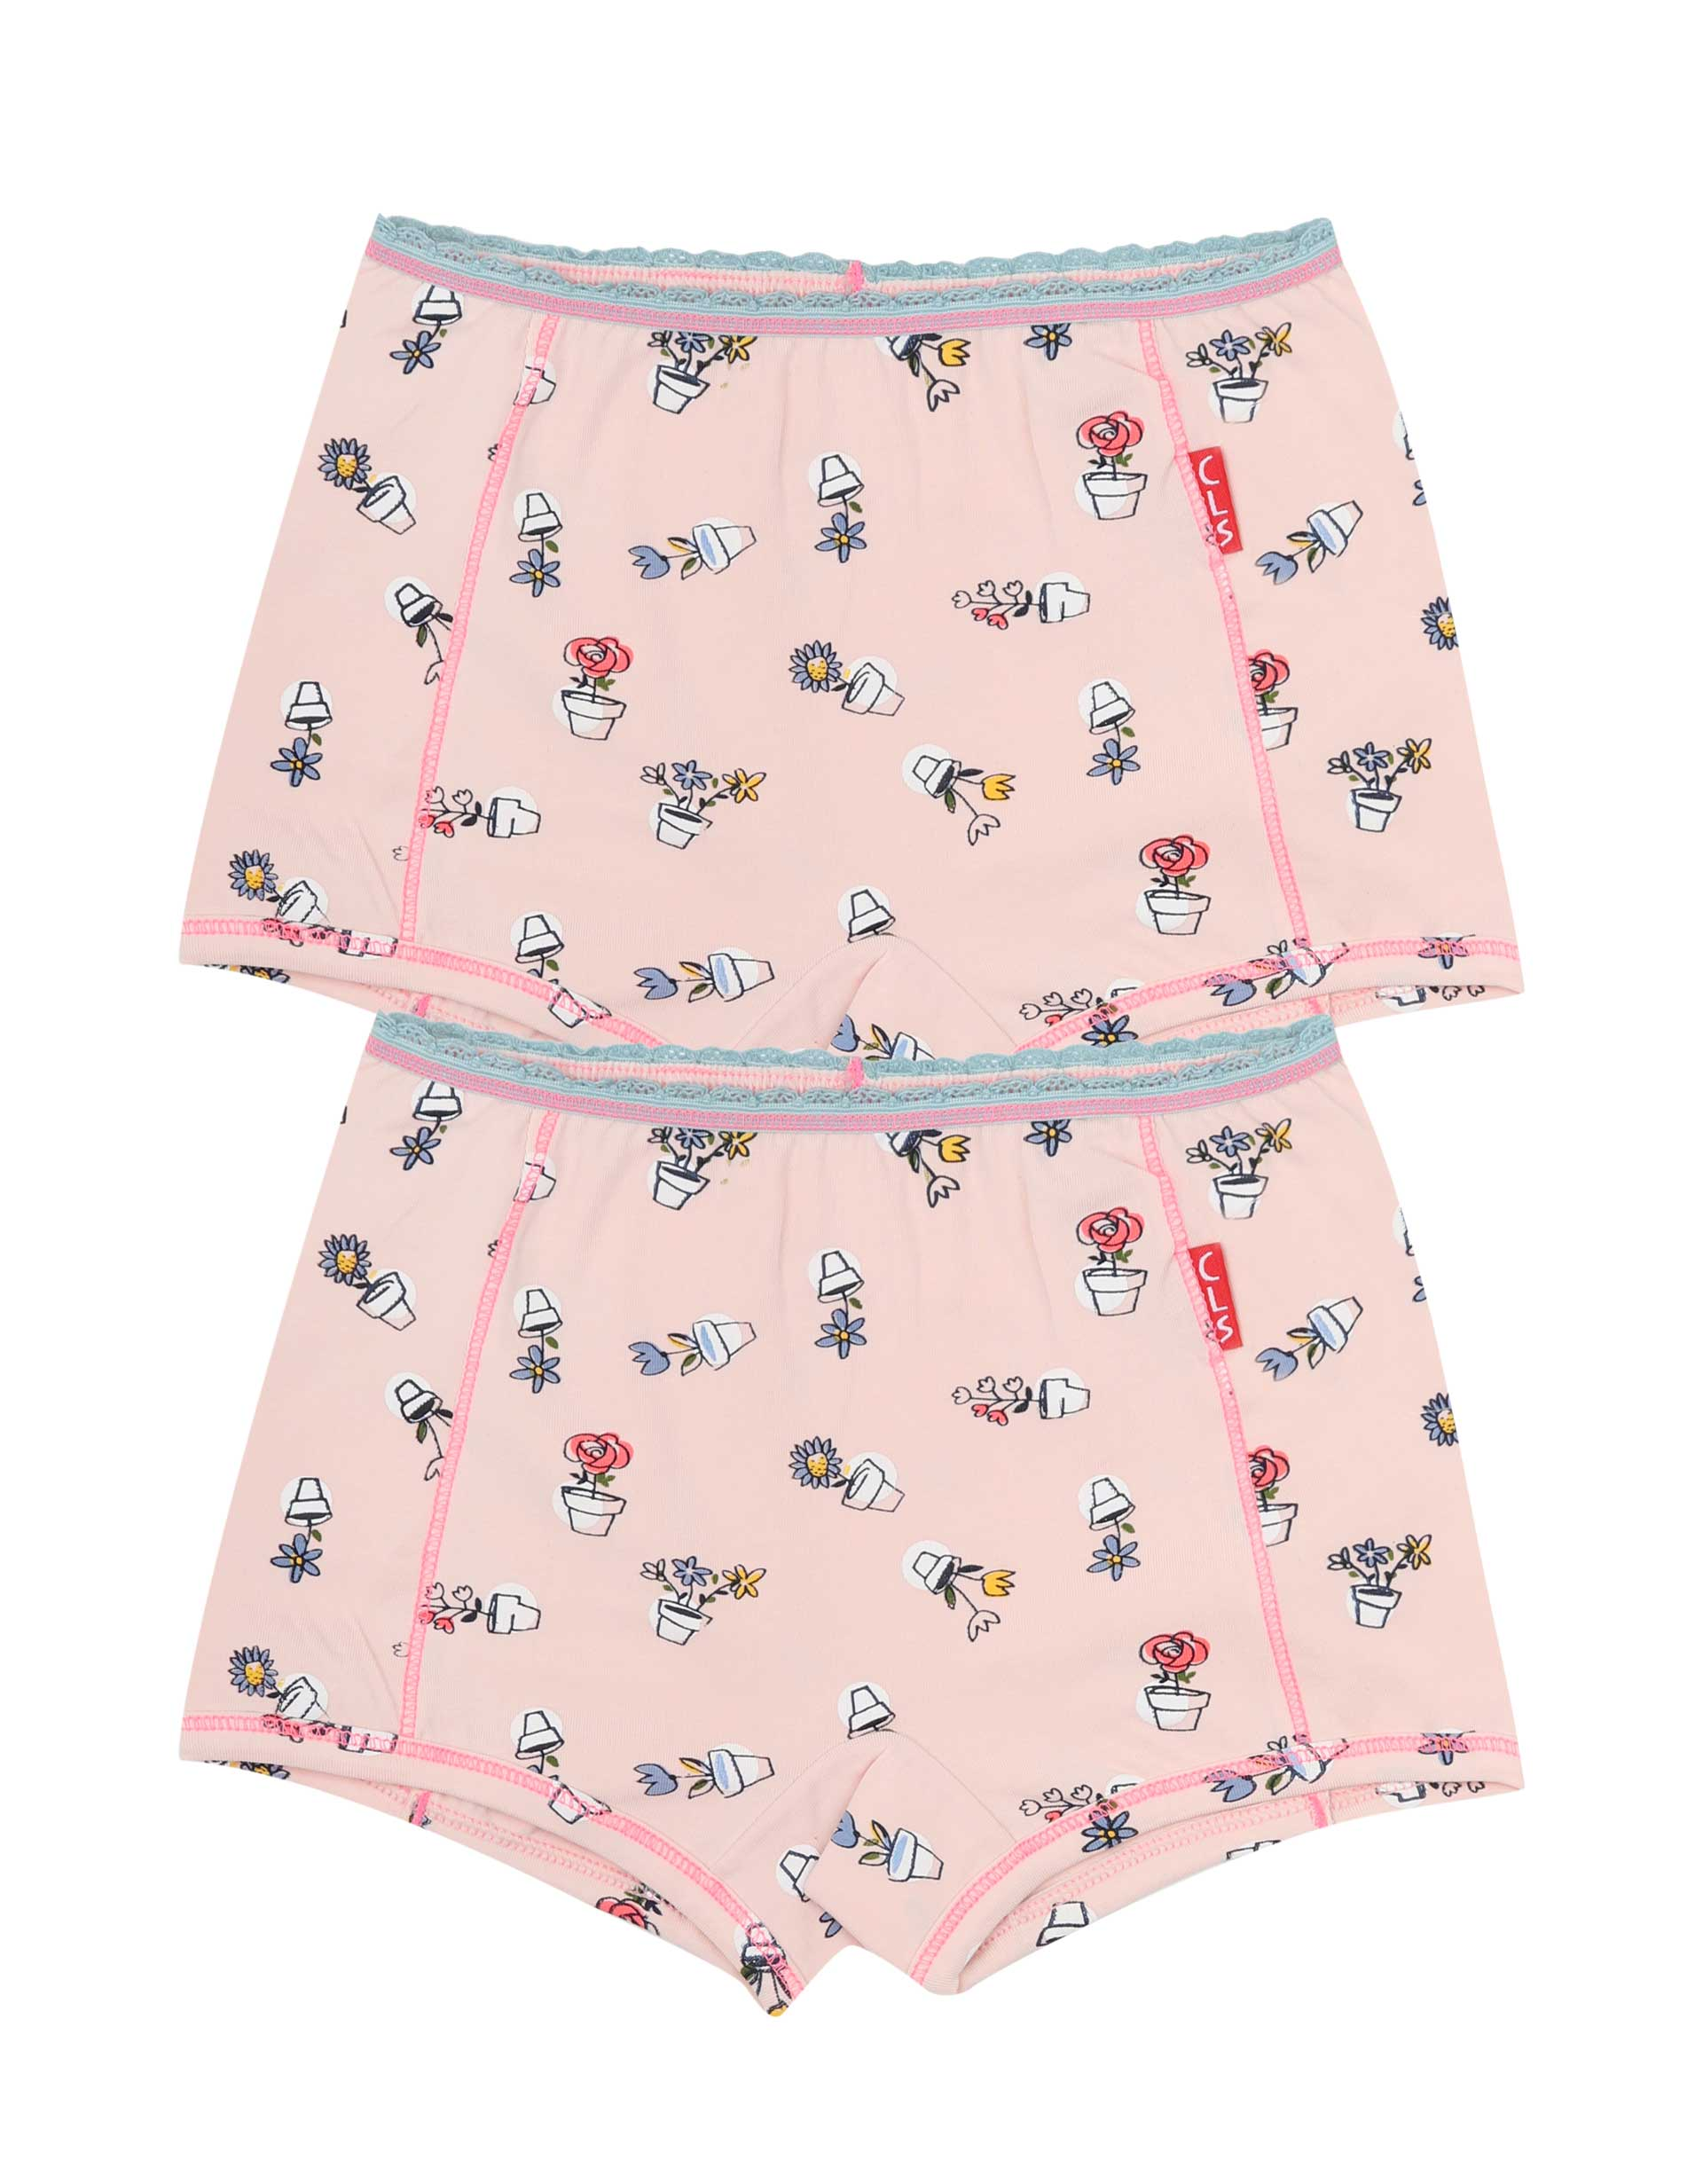 Boxershorts 2-pack Pink Plants